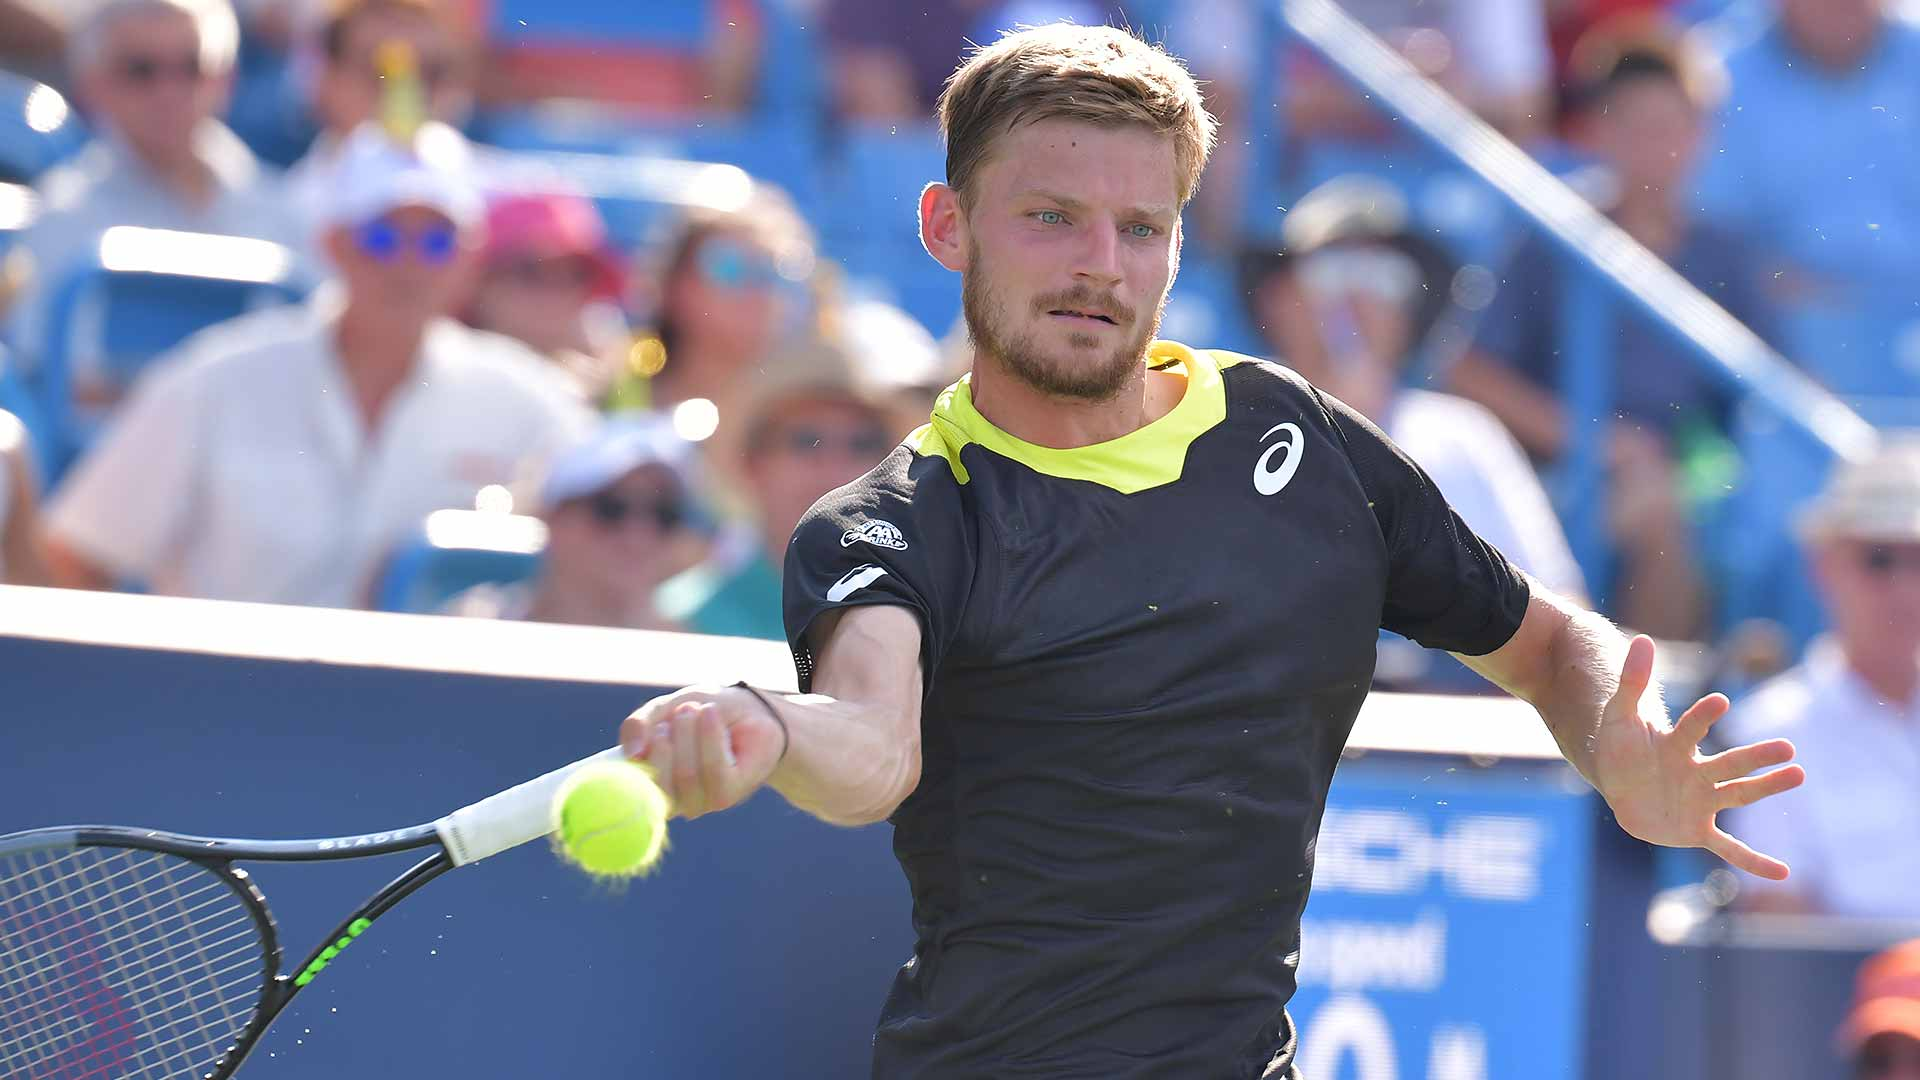 David Goffin plays in his first ATP Masters 1000 final on Sunday in Cincinnati.